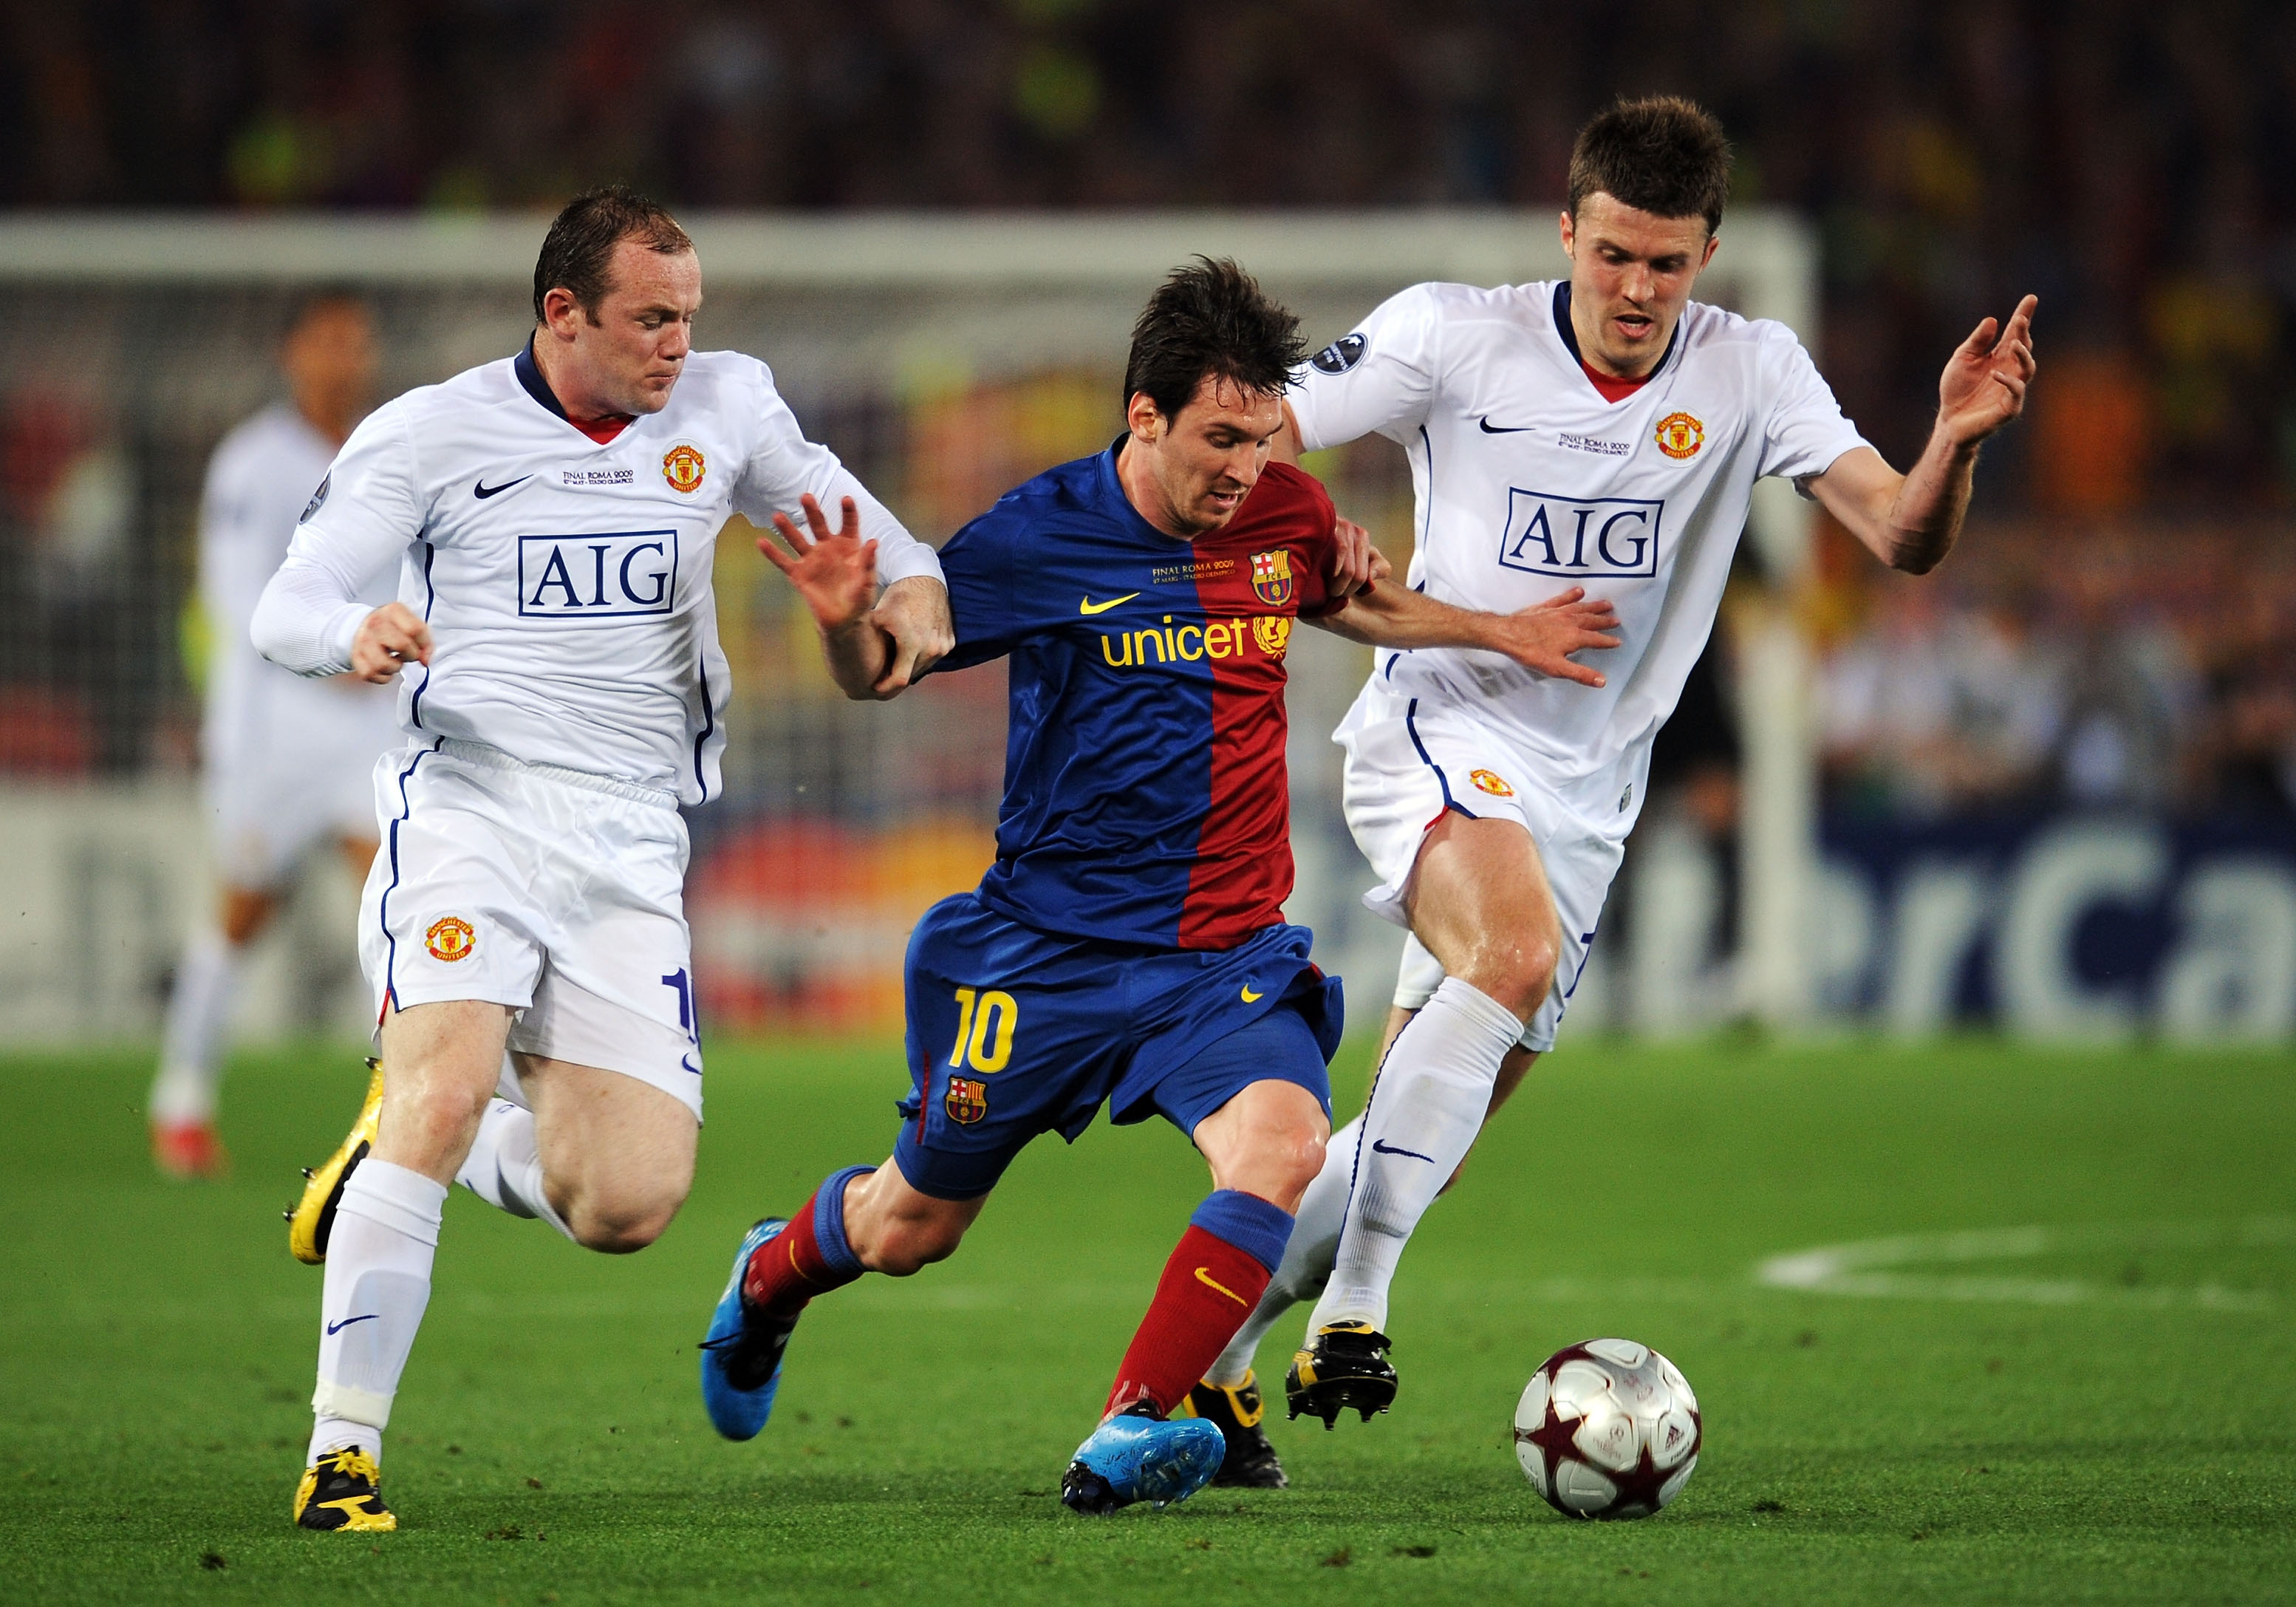 ROME - MAY 27:  Lionel Messi of Barcelona battles for the ball with Wayne Rooney of Manchester United and Michael Carrick of Manchester United during the UEFA Champions League Final match between Barcelona and Manchester United at the Stadio Olimpico on M